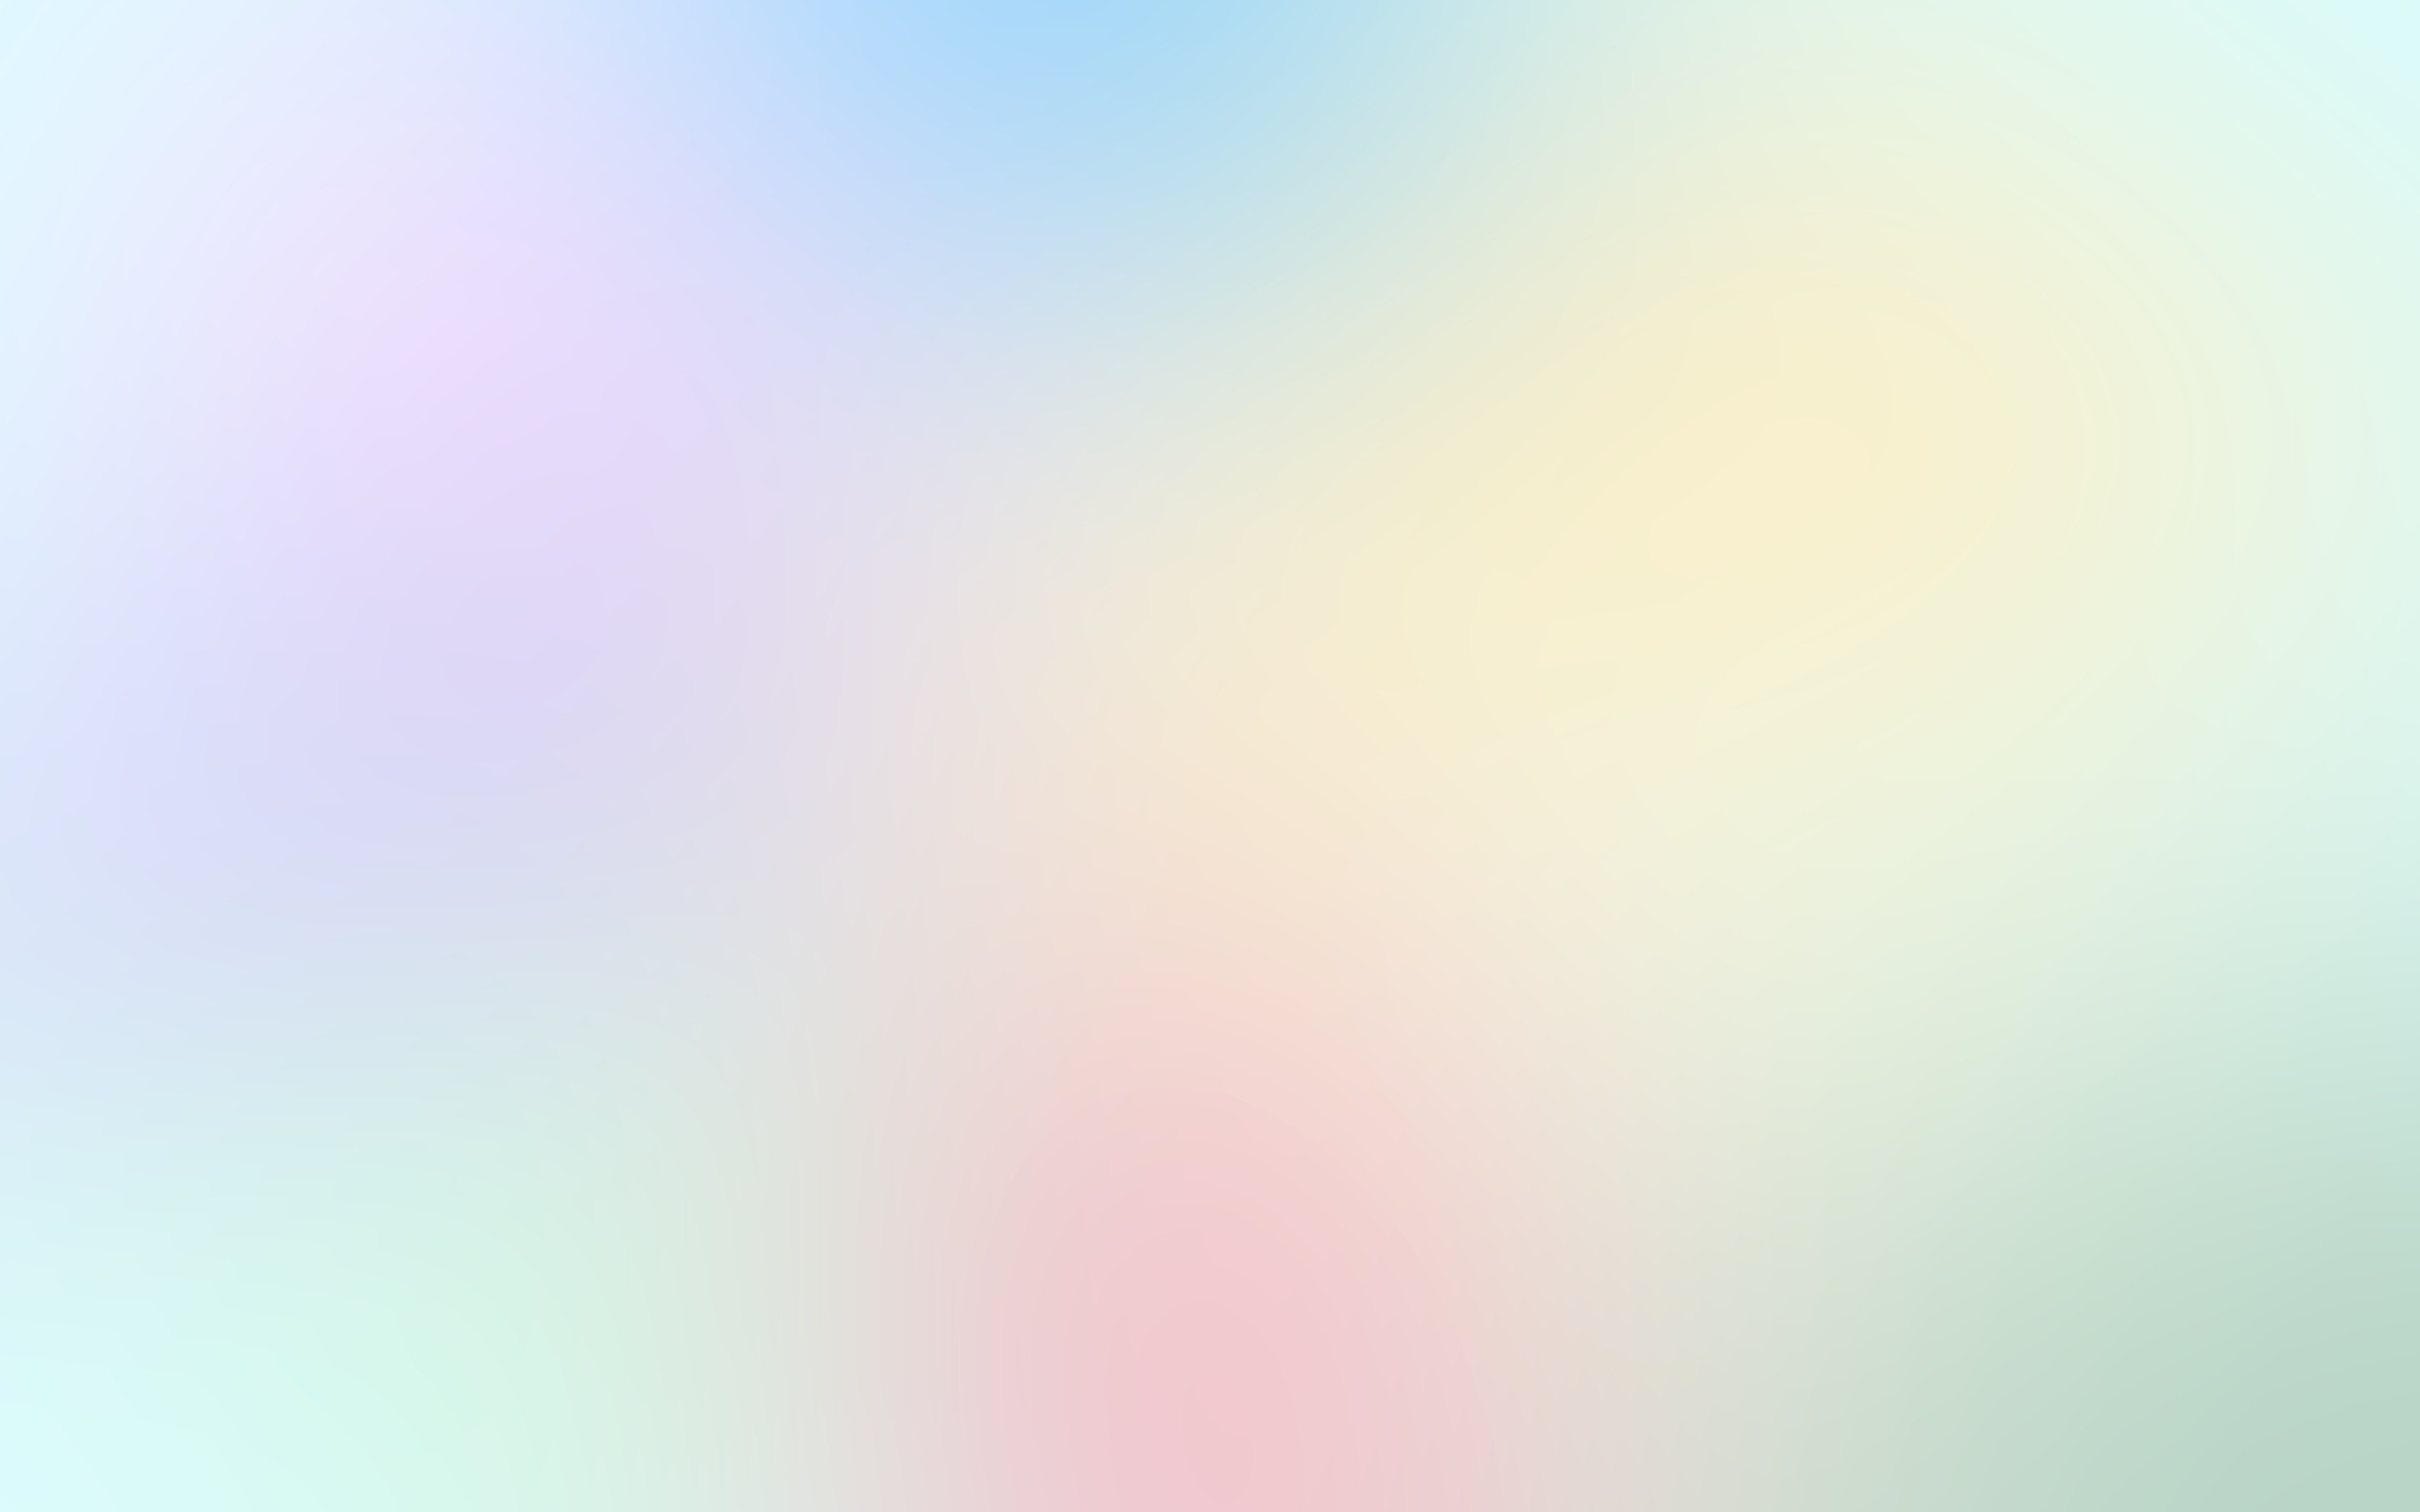 pastel background images  46  images